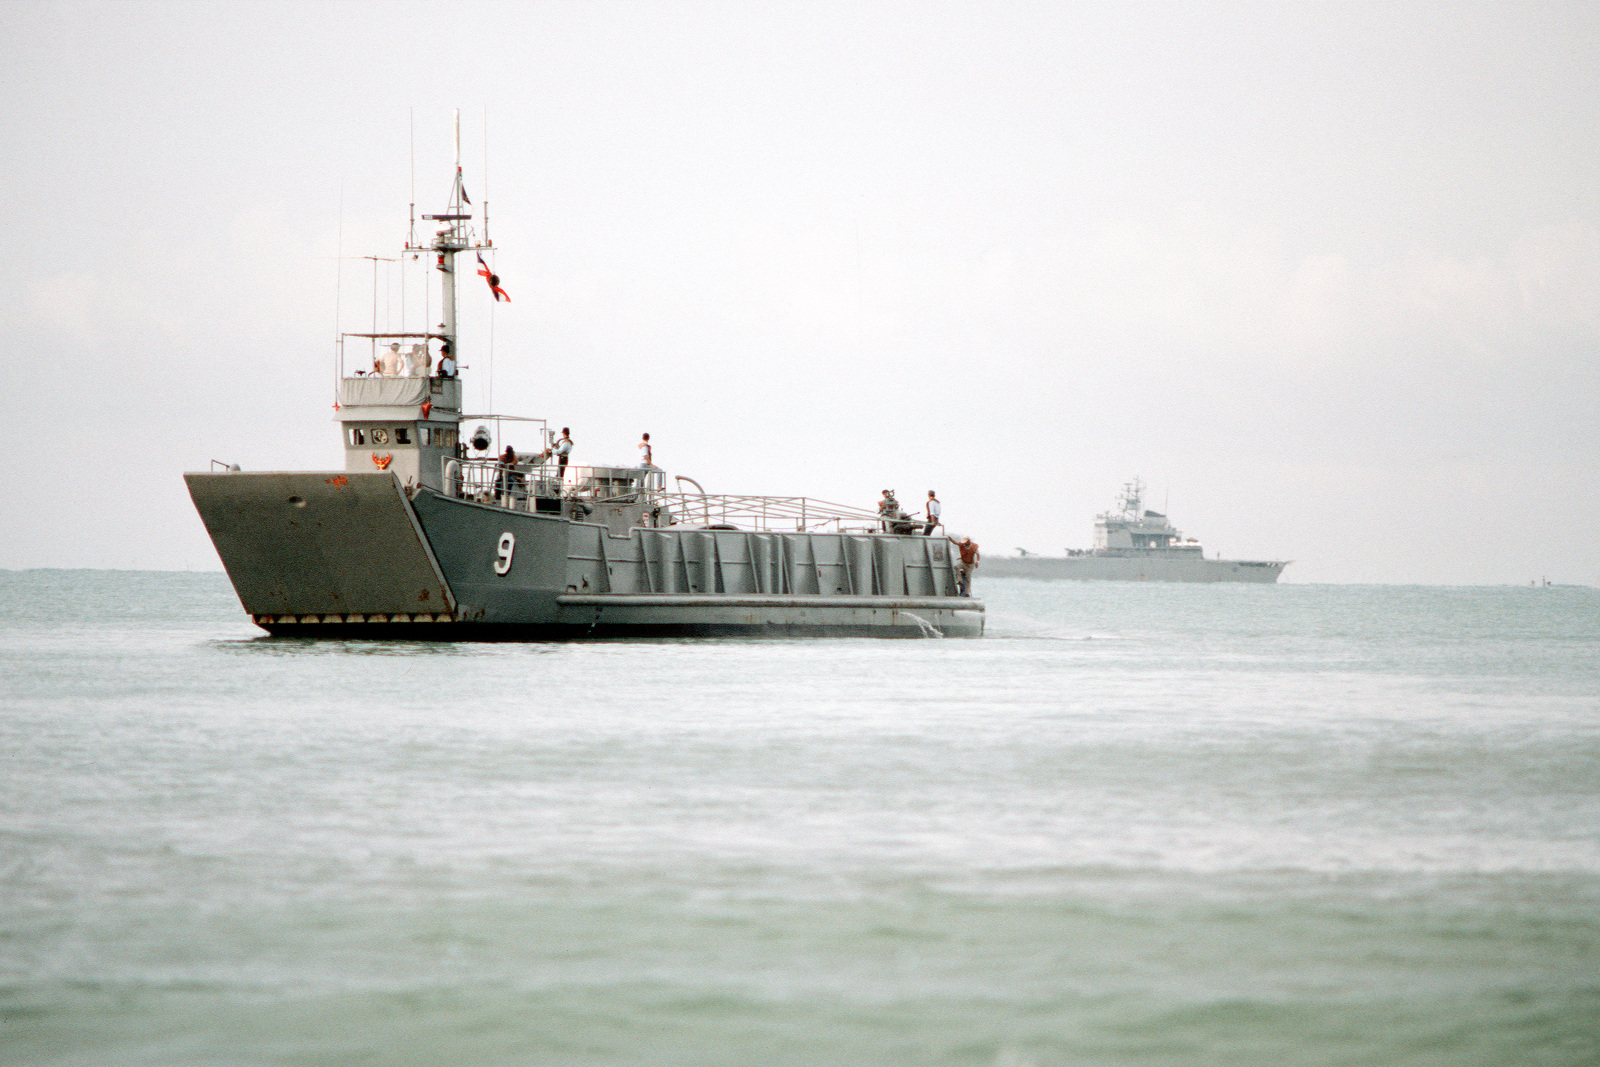 The Thai utility landing craft WANG NOK (LCU-9) approaches the beach during the combined Thai/U.S. exercise Cobra Gold '90. A Thai Normed class tank landing ship is in the background